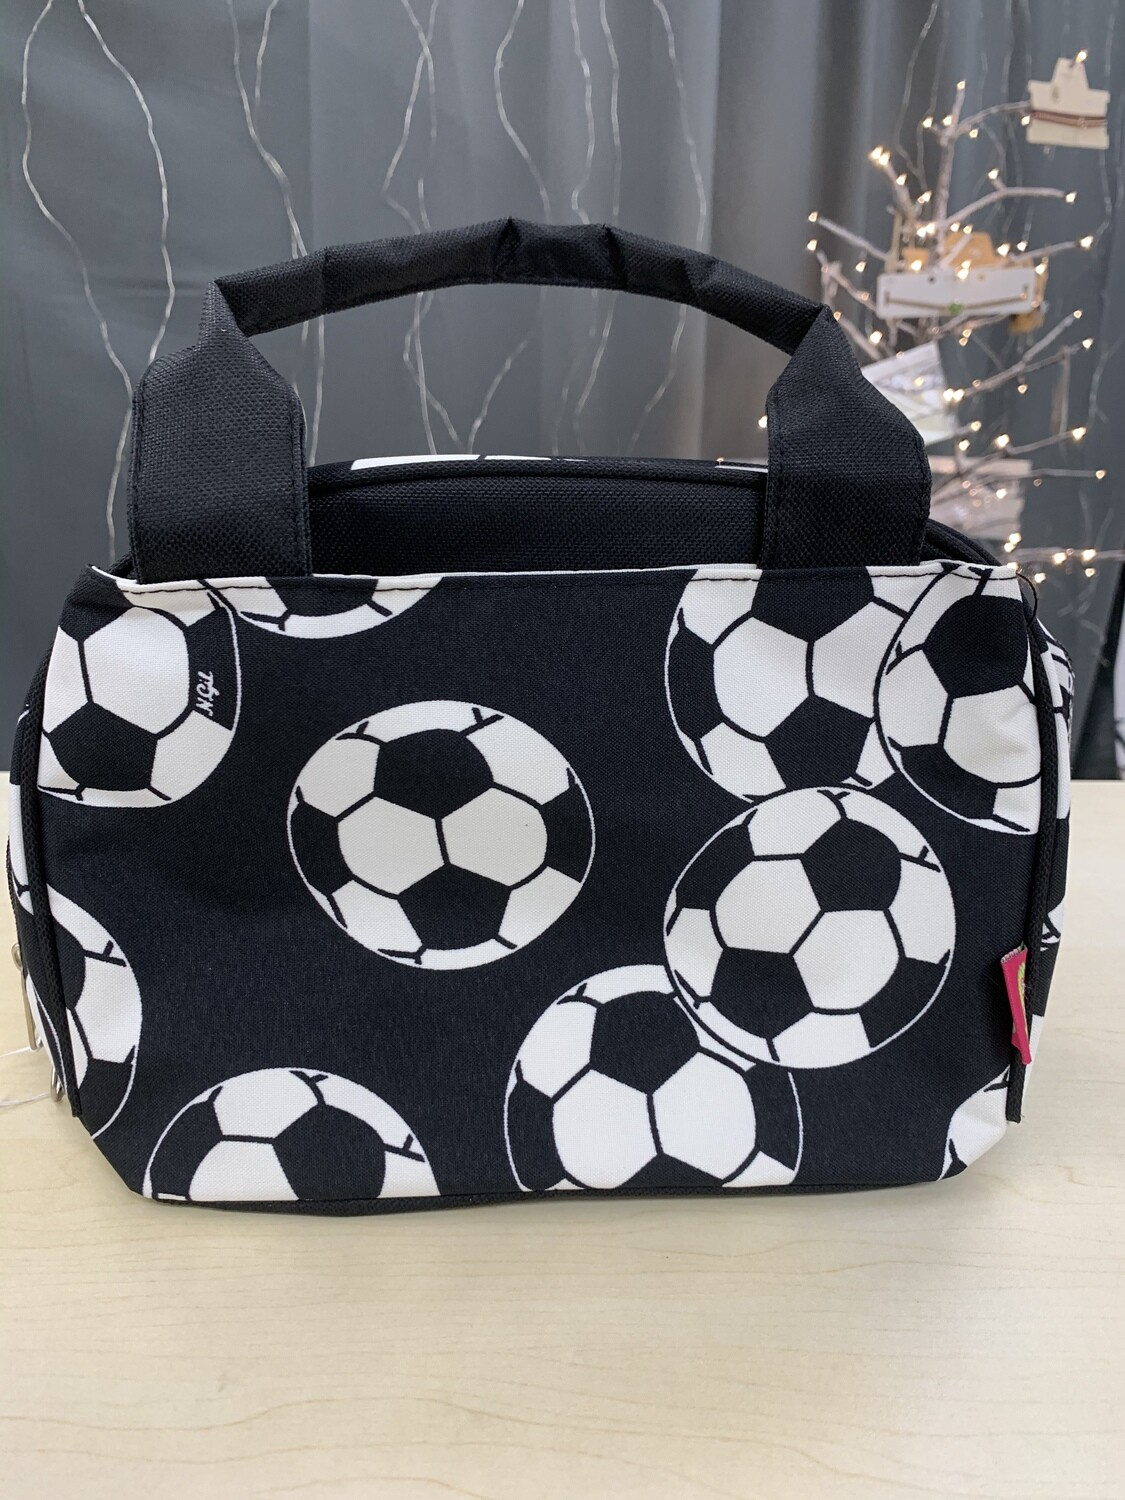 Soccer Lunch Tote